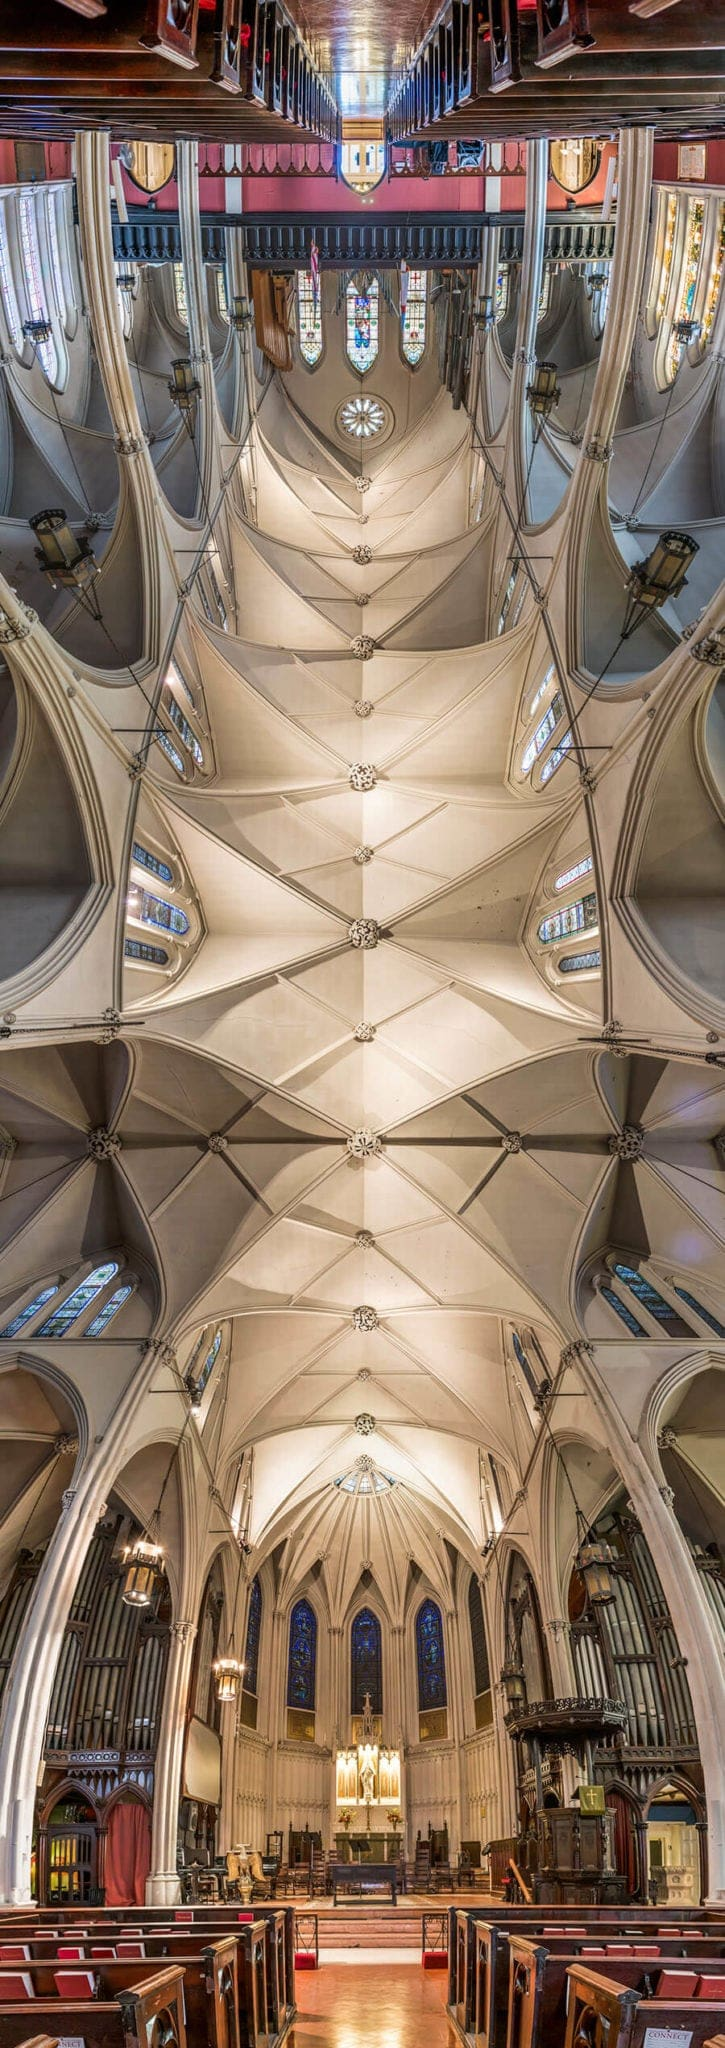 Vertical Panoramic Images of New York Churches by Richard Silver -new york, feat, churches, architecture